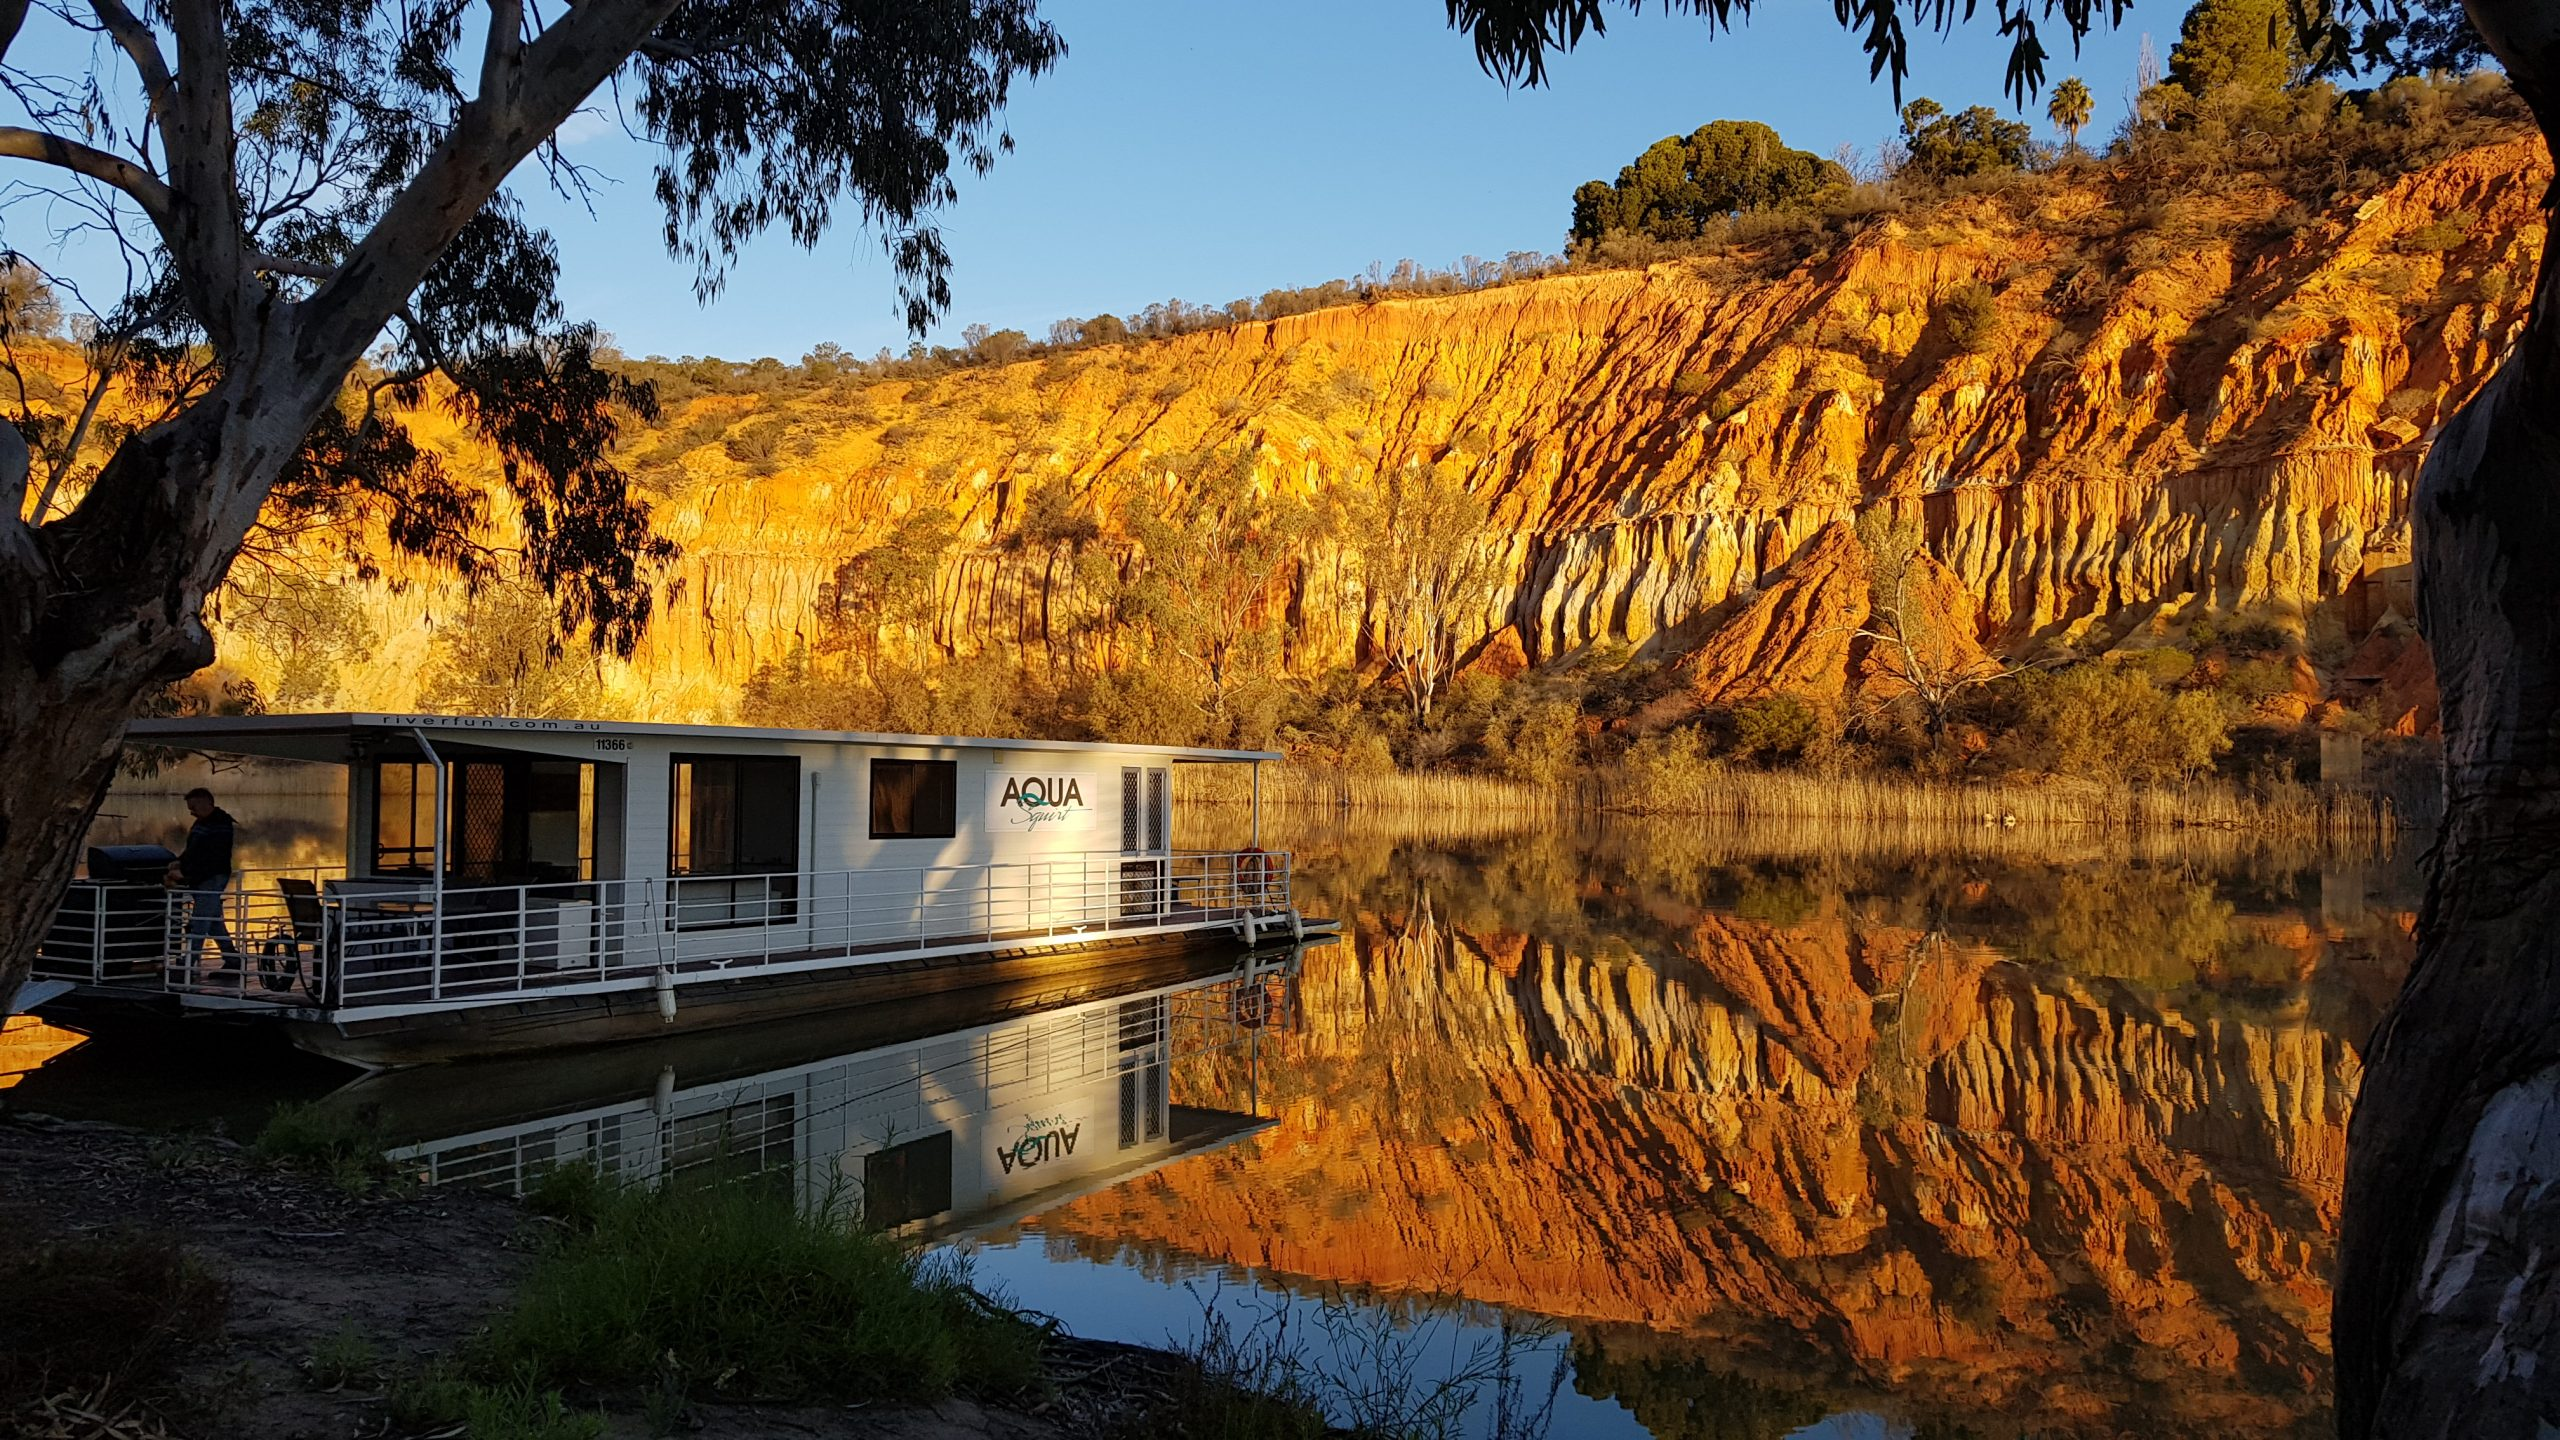 Book your next Staycation with Riverfun Houseboats!